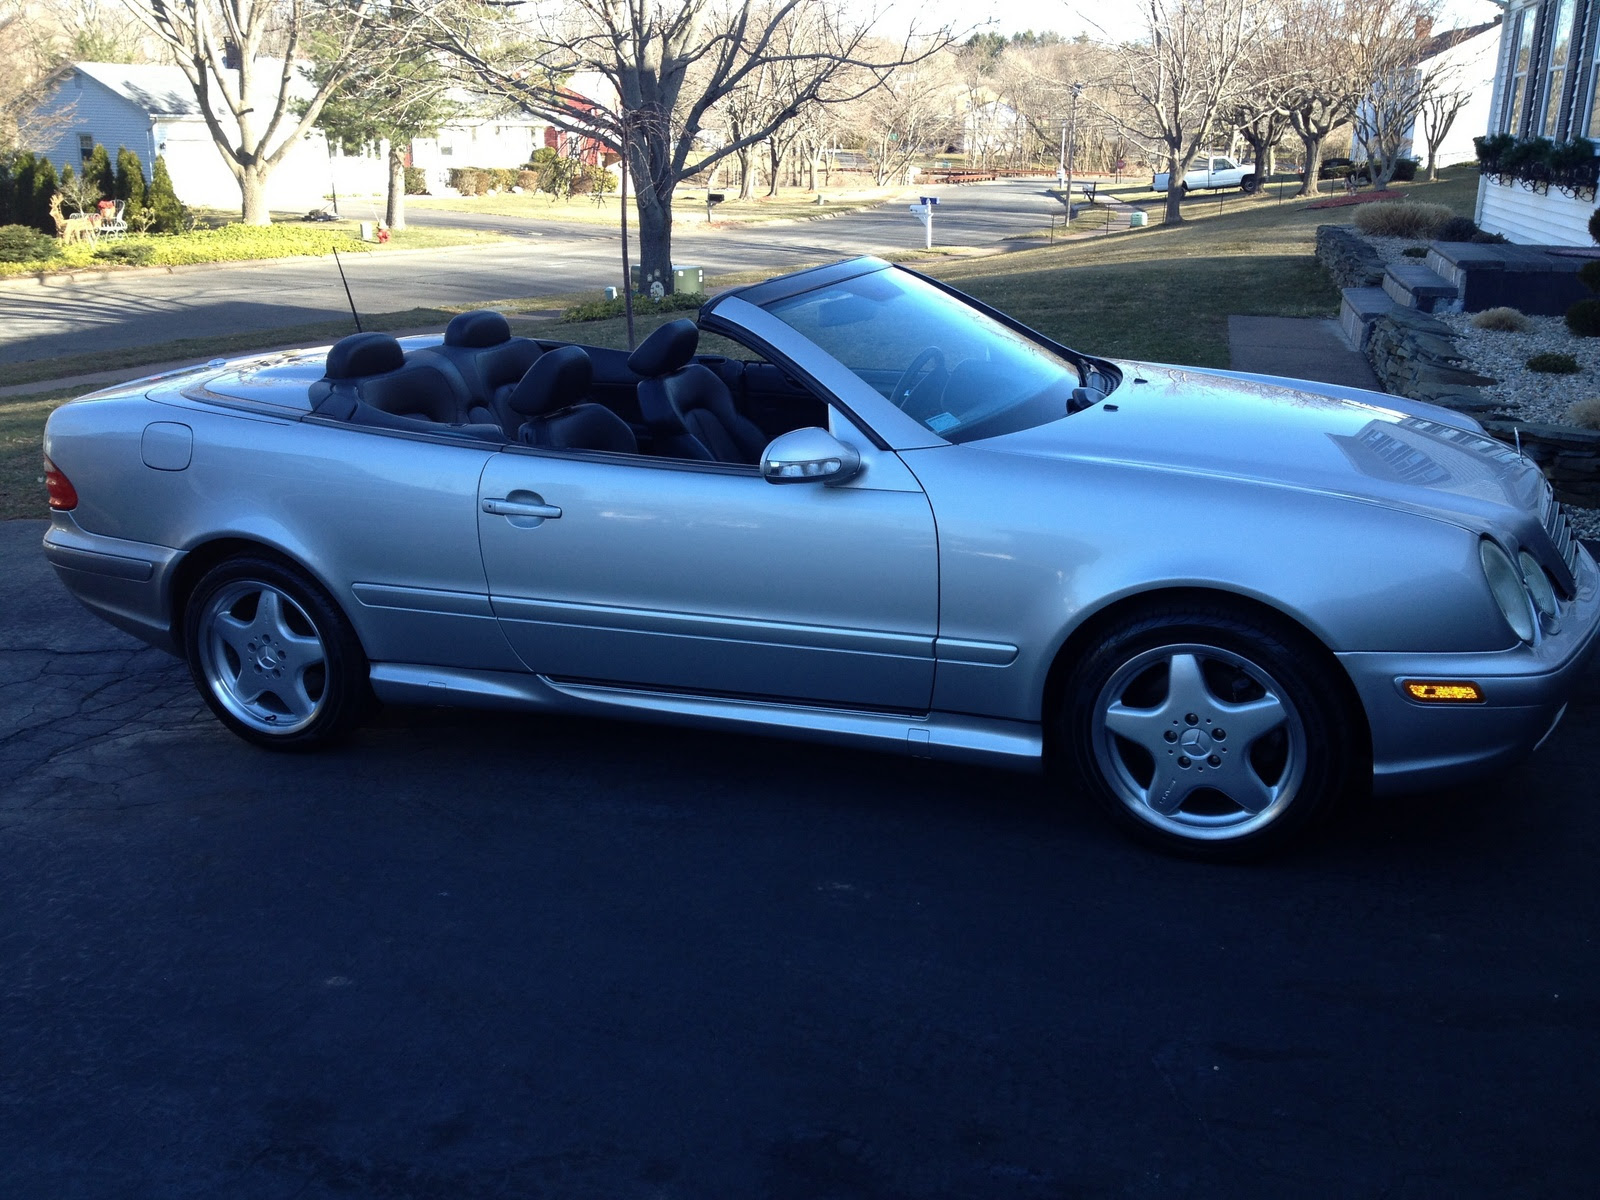 Used Mercedes-Benz CLK-Class For Sale Hartford, CT - CarGurus